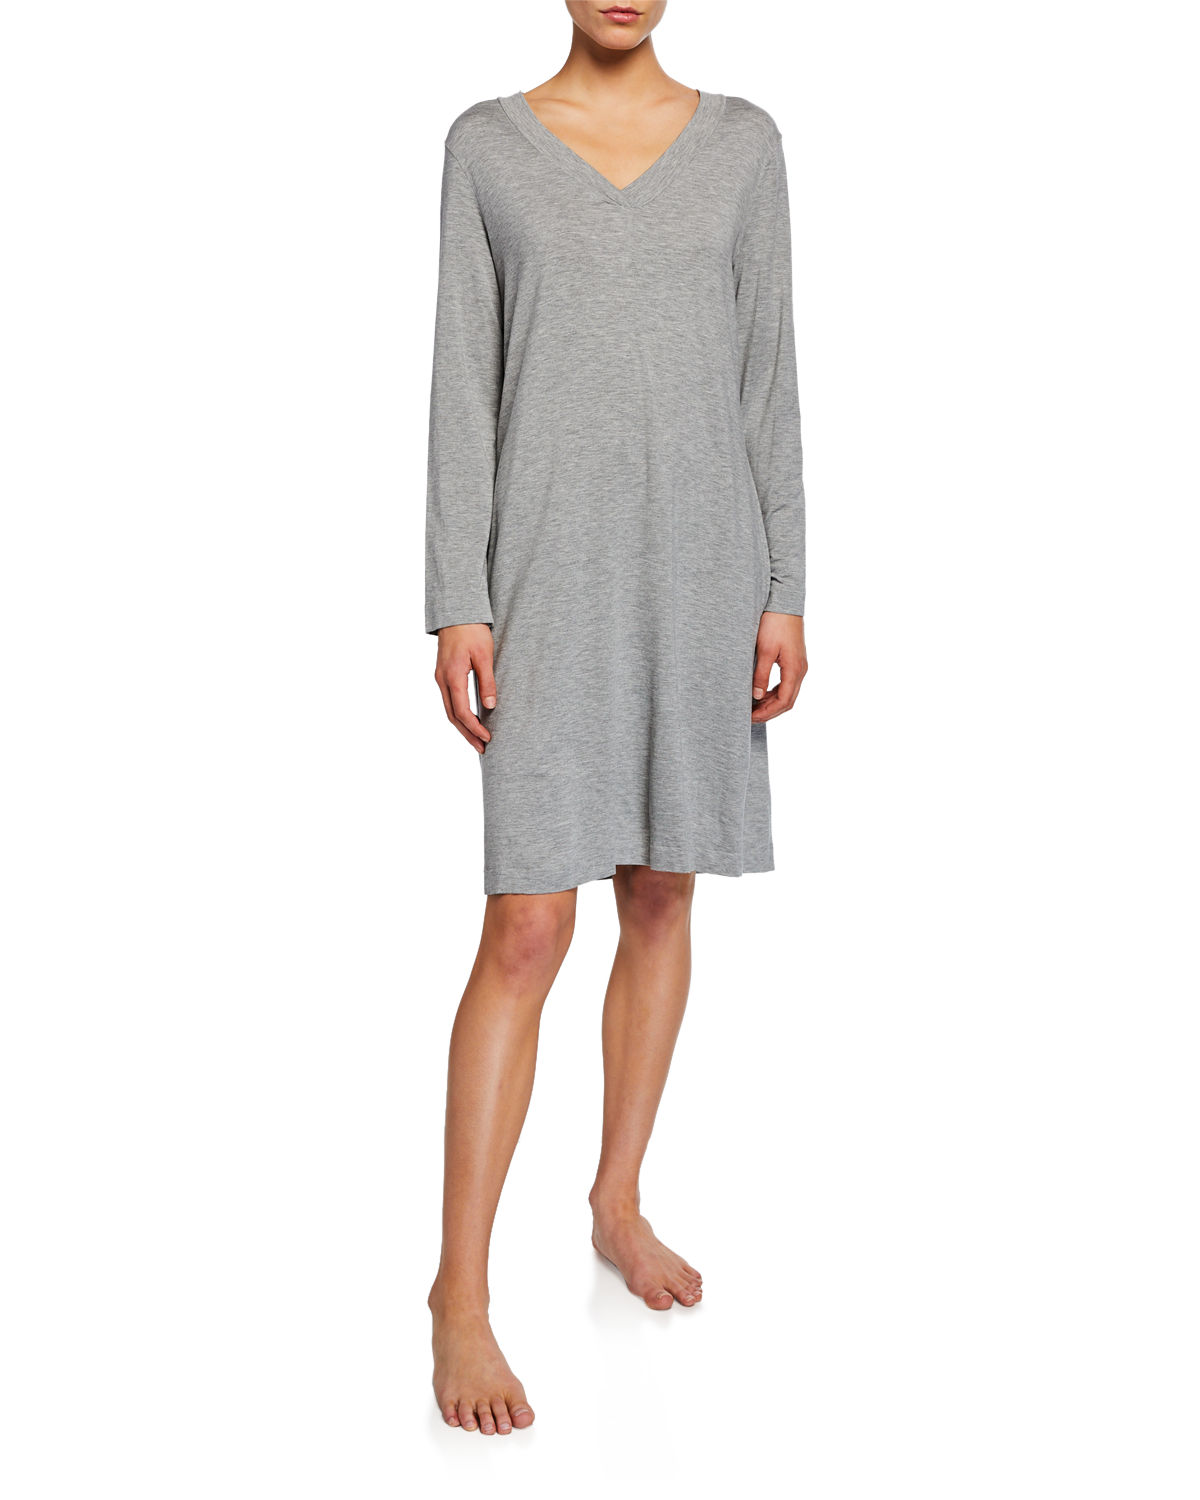 Champagne Long-Sleeve Nightgown